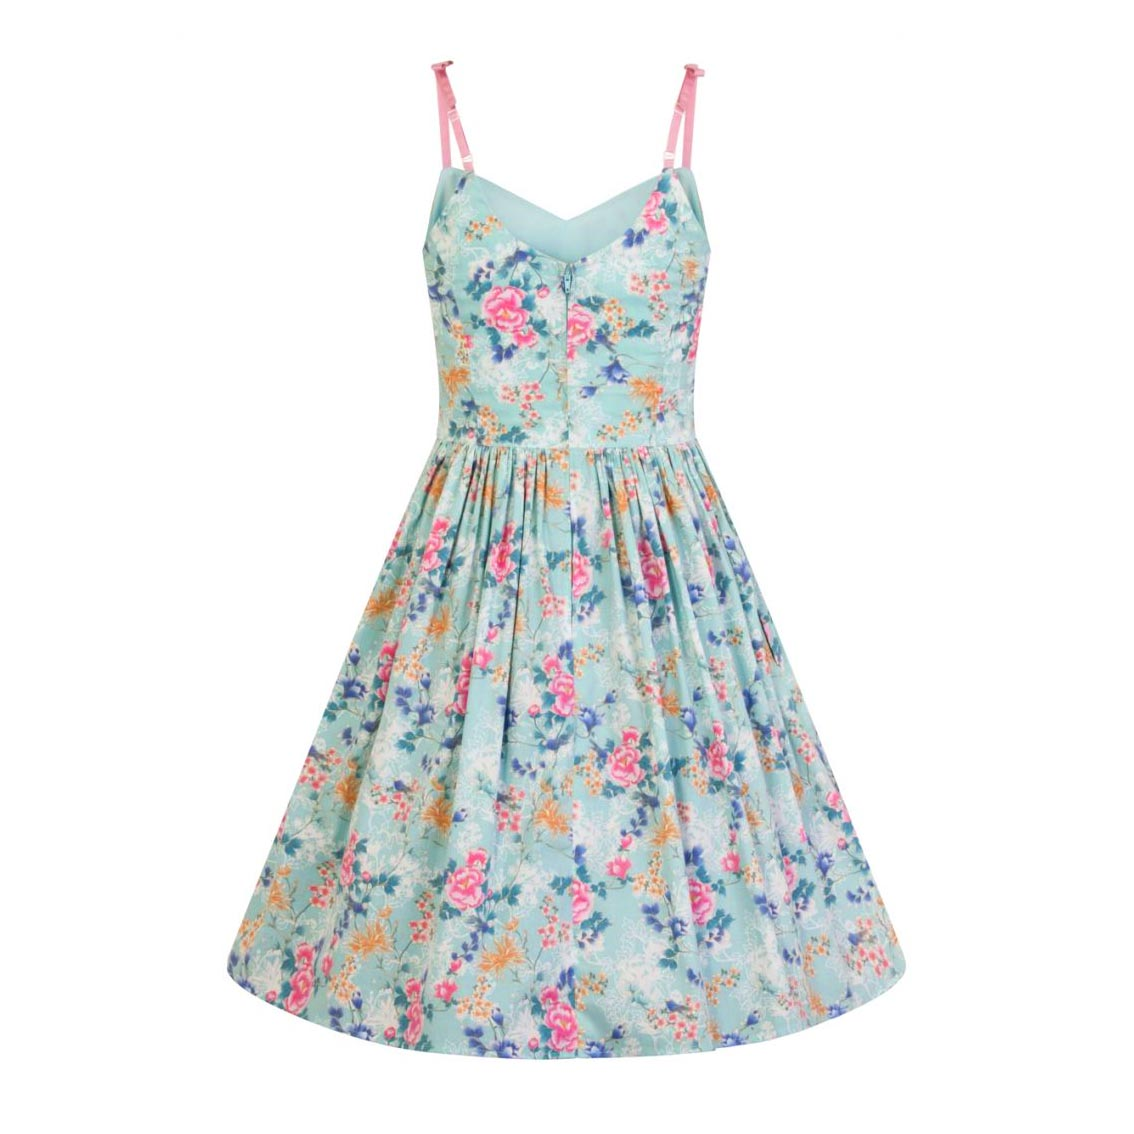 Hell-Bunny-50s-Mid-Length-Dress-Vintage-Blue-Pink-SAKURA-Flowers-Roses-All-Sizes thumbnail 40